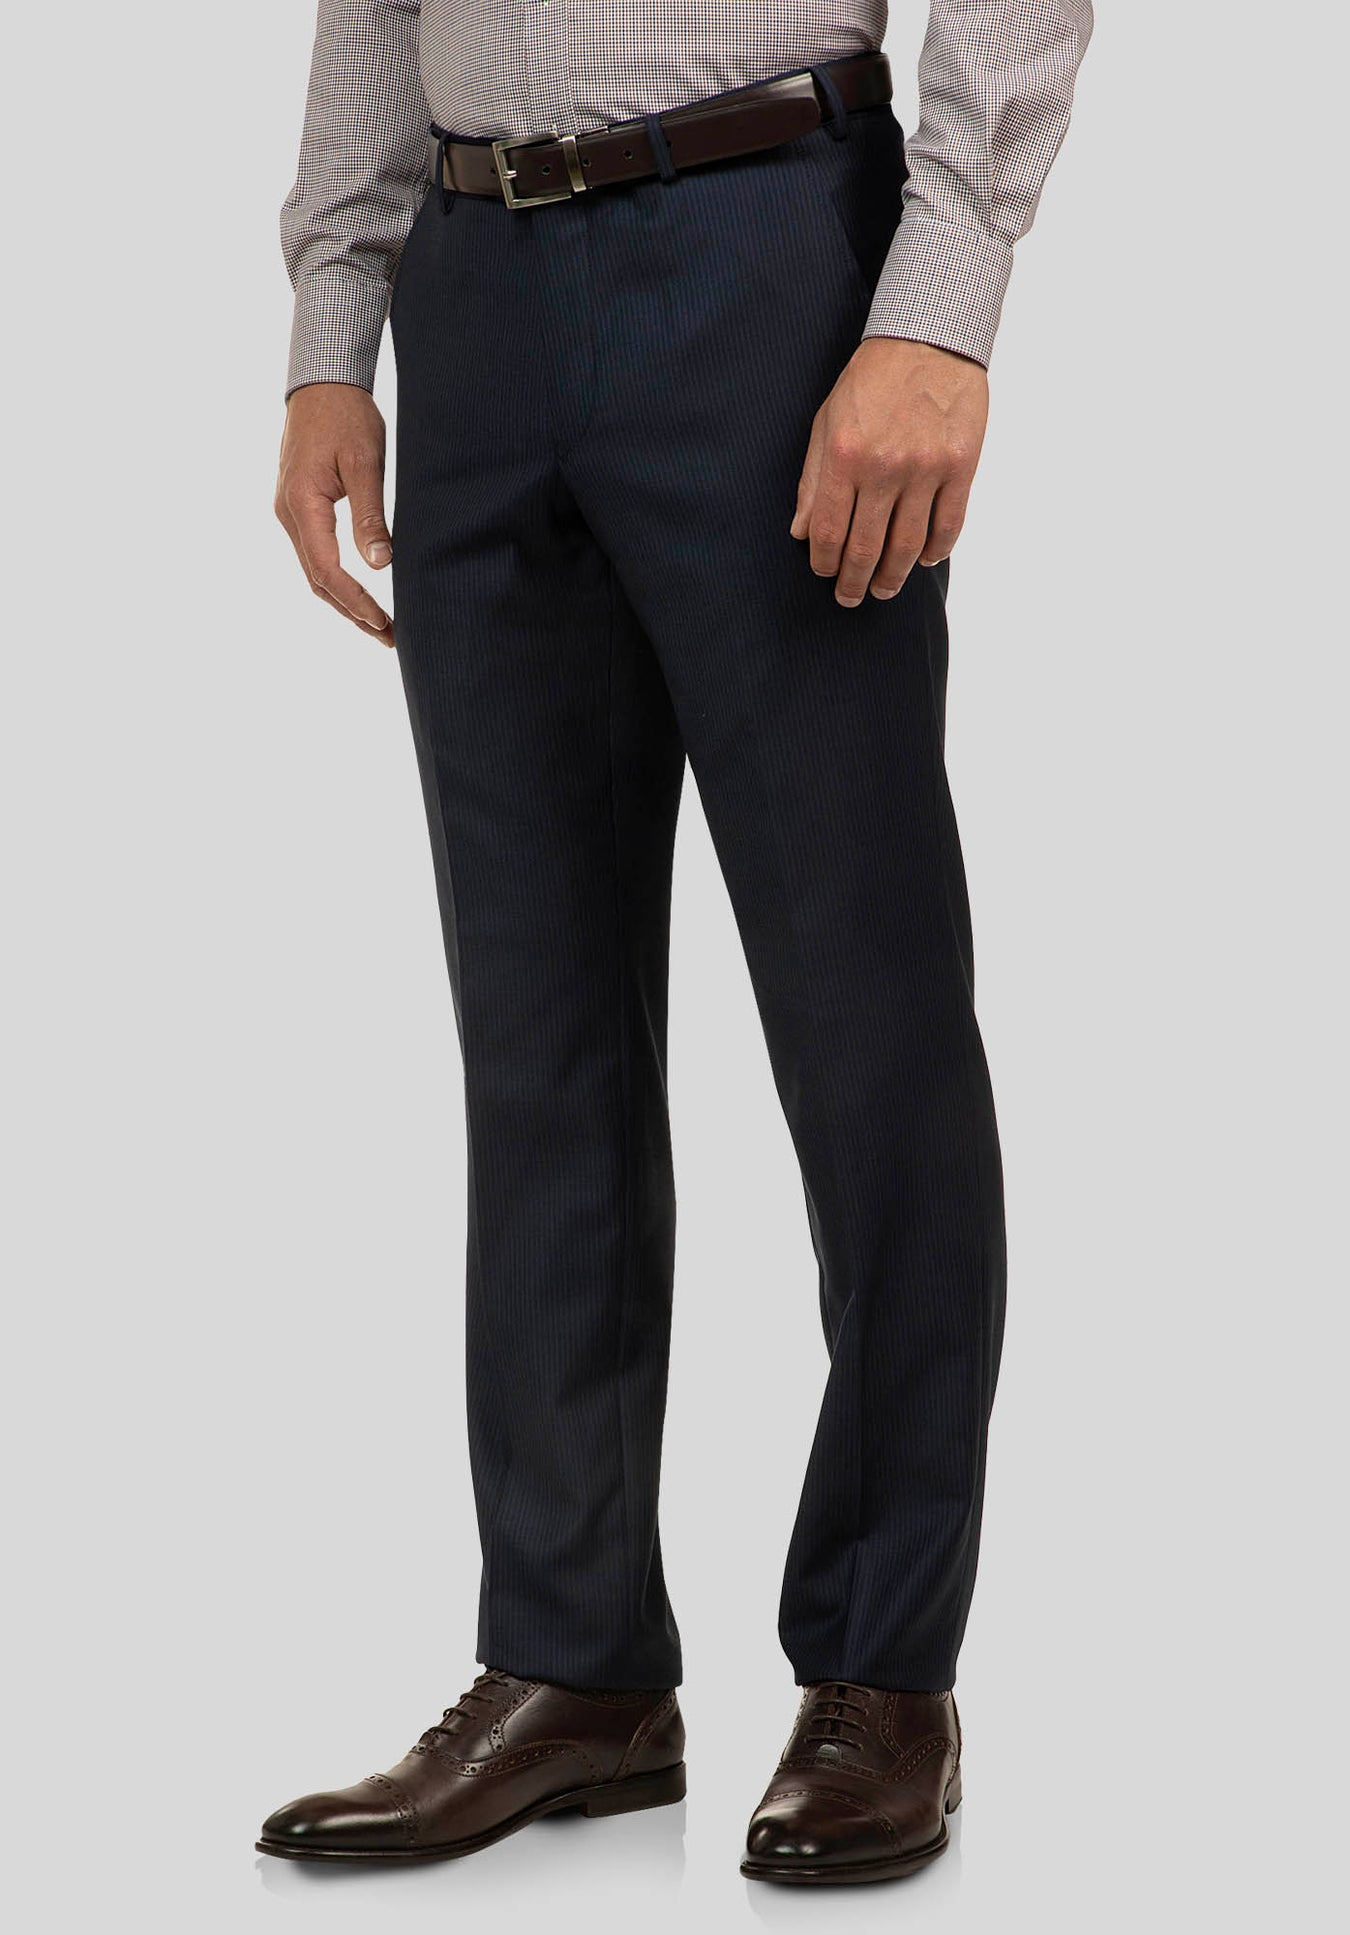 INTERCEPTOR TROUSER FCJ353 - Navy